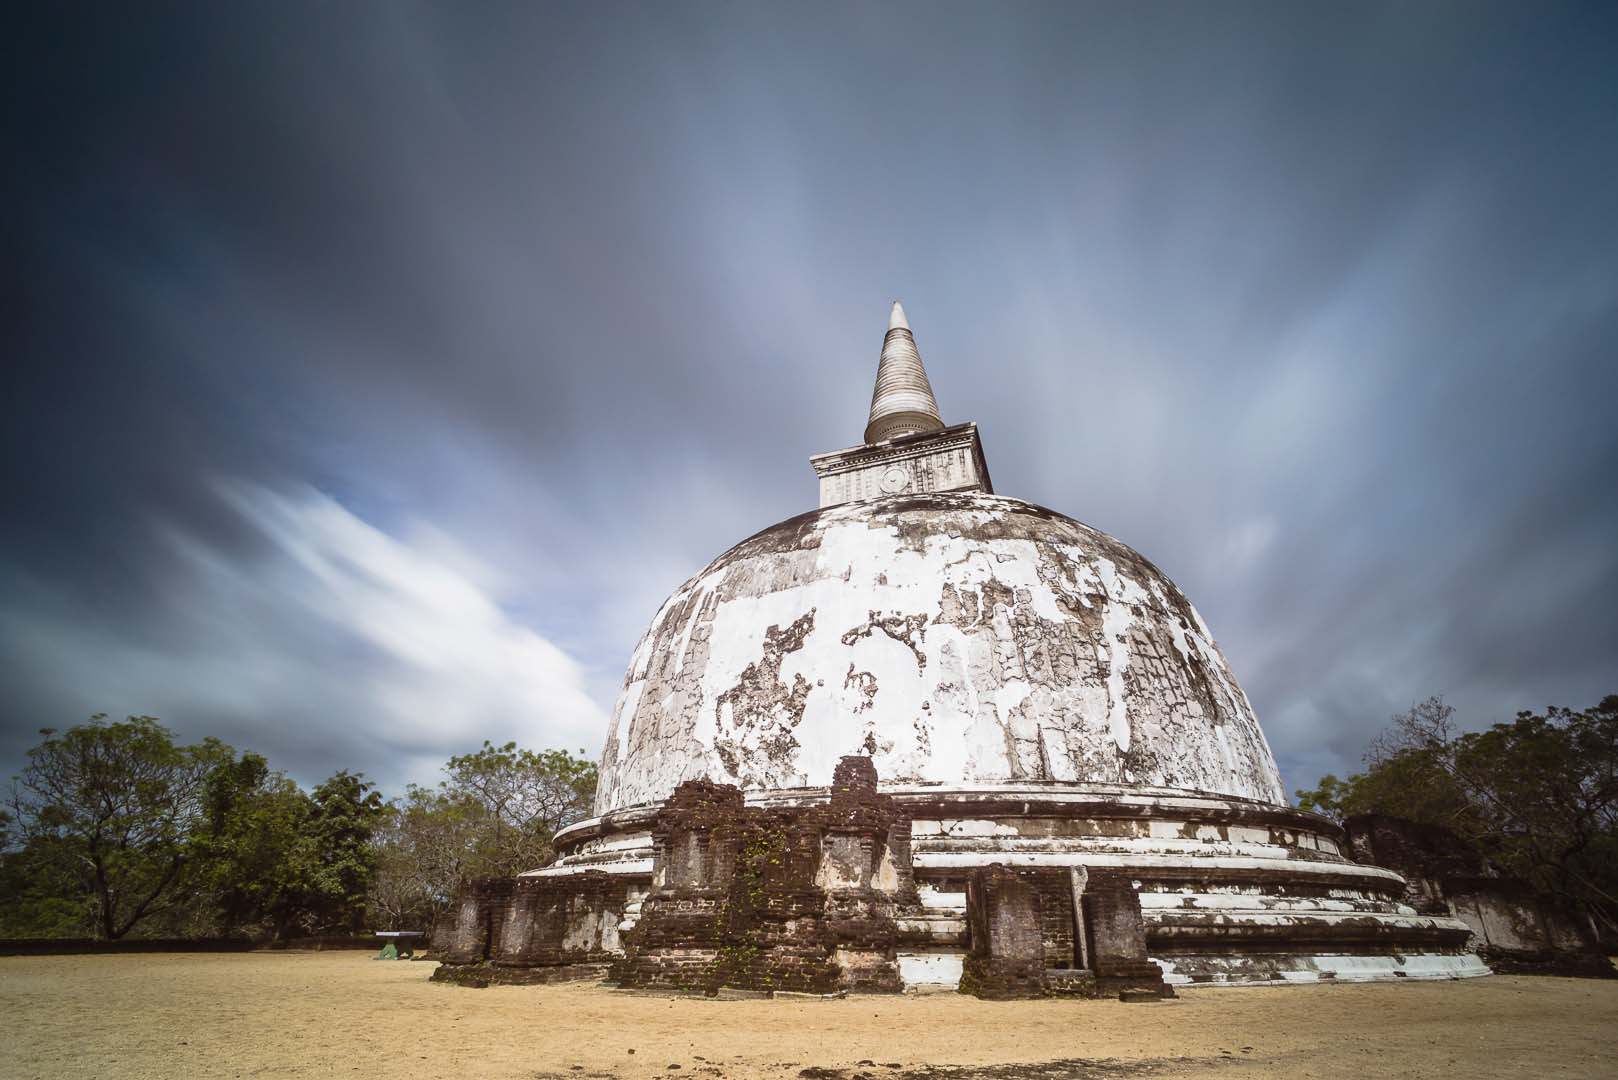 The Sacred Island Awaits - Led by Dr. Miles Neale along with special local guest teachers this authentic Buddhist pilgrimage takes you to the sacred Island of Sri Lanka.